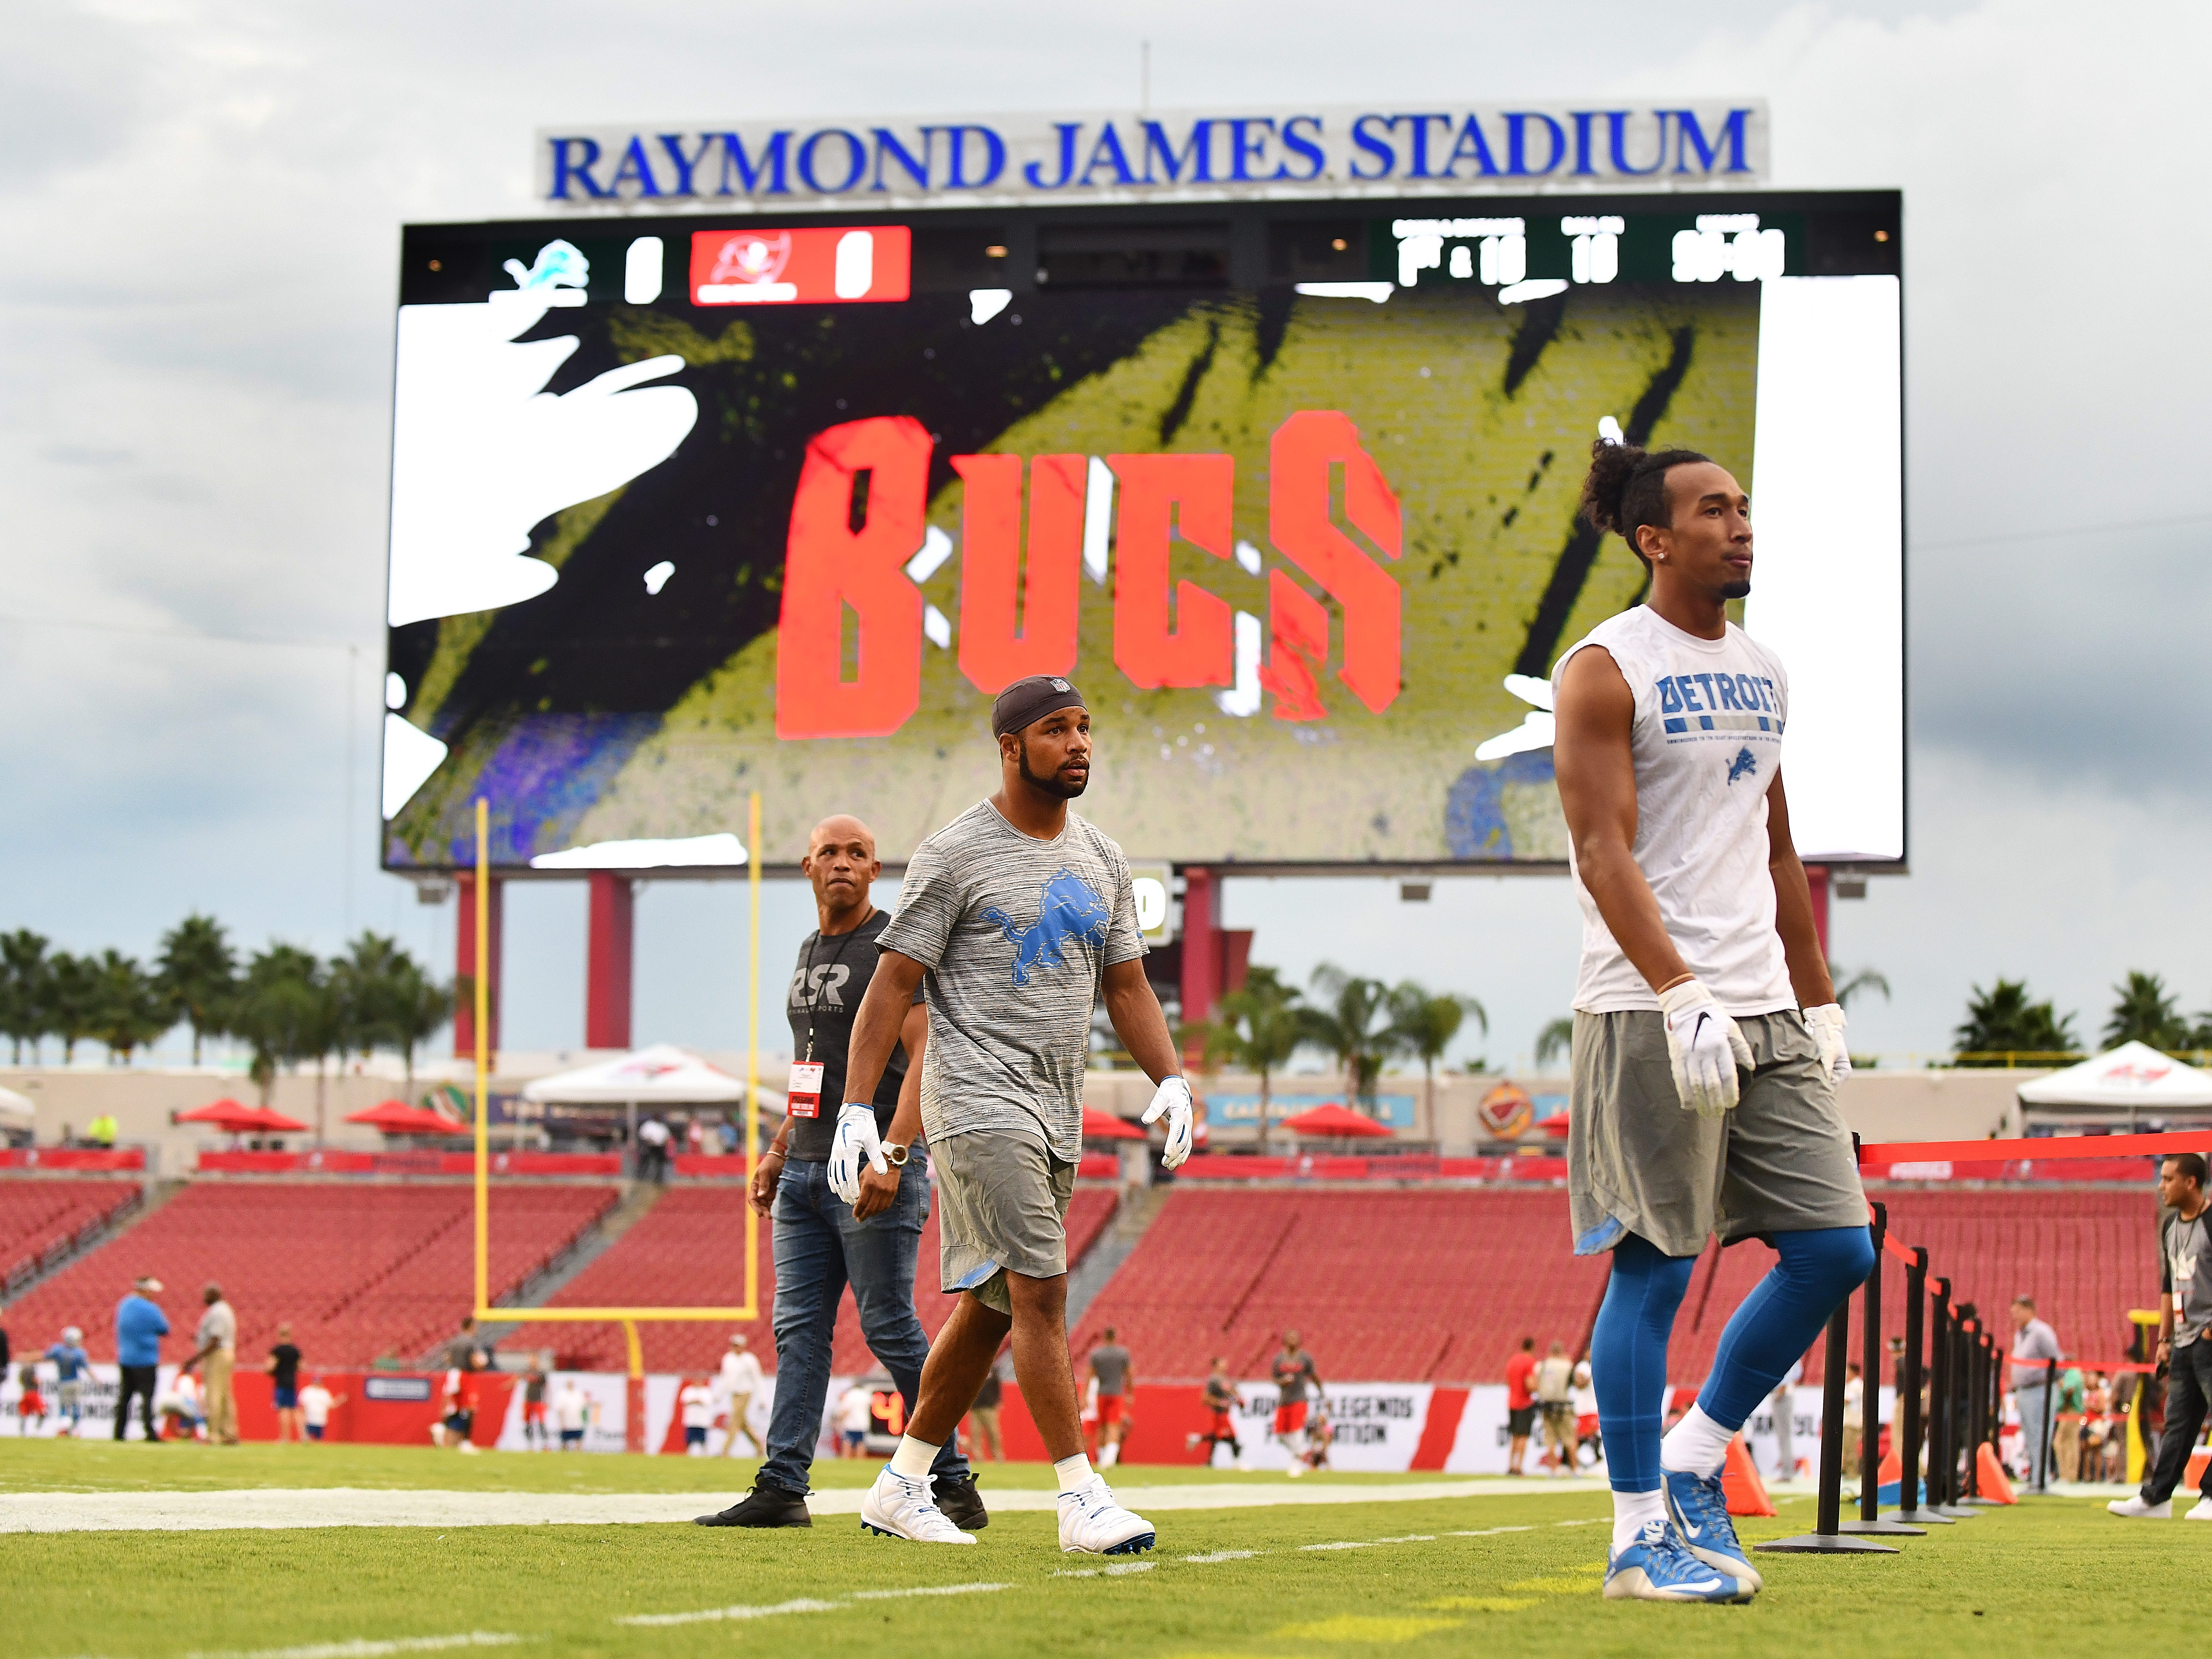 Lions wide receivers Golden Tate and T.J. Jones head off the field during warmups with an ominous sky over head at Raymond James Stadium Friday evening.